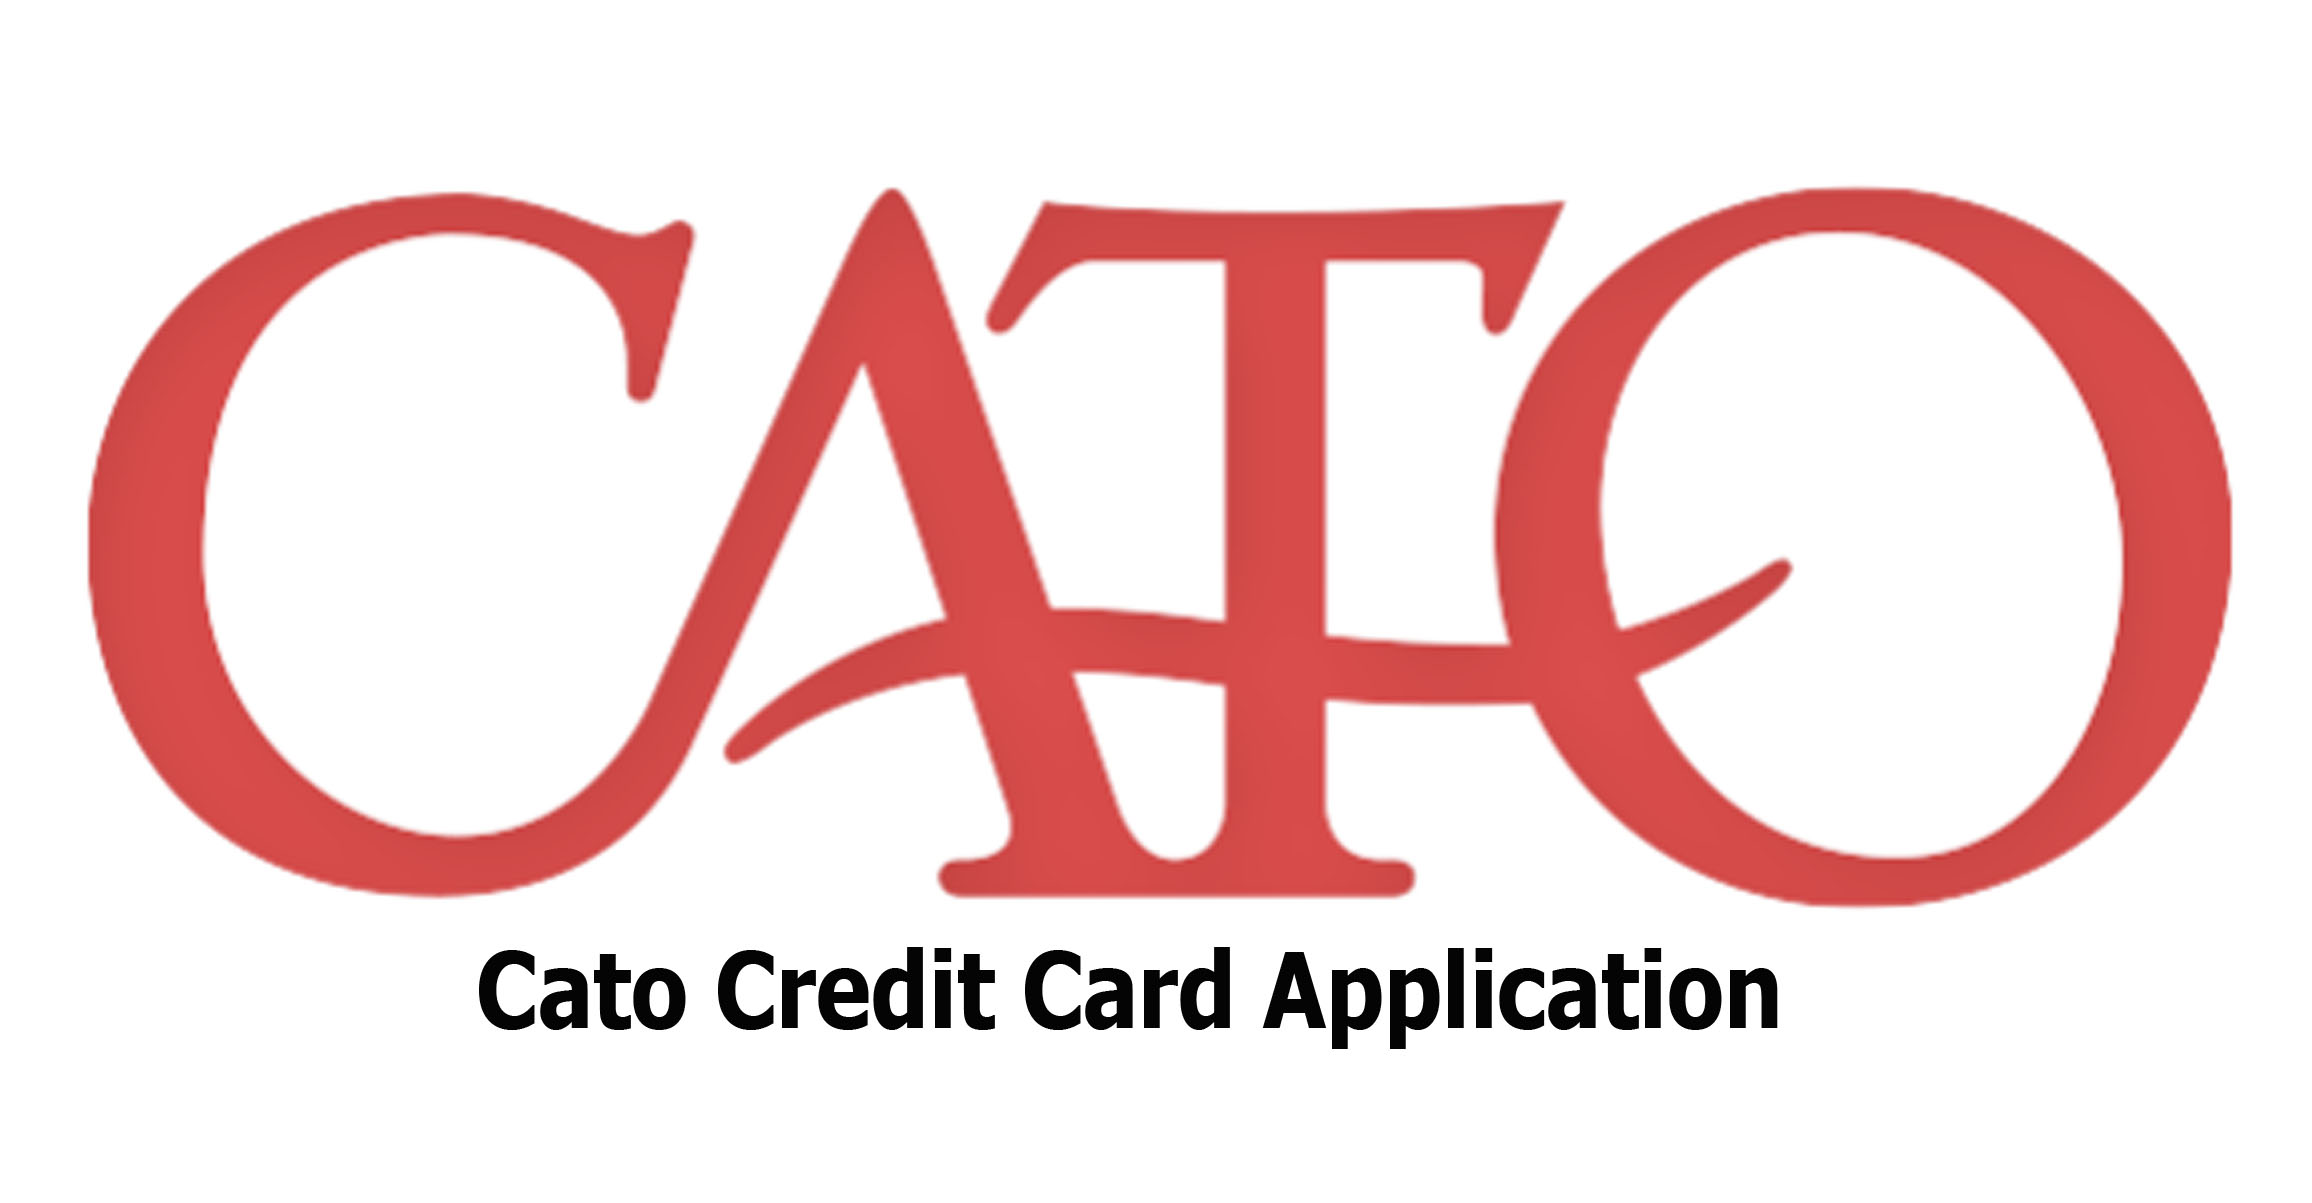 Cato Credit Card Application - Cato Credit Card Payment